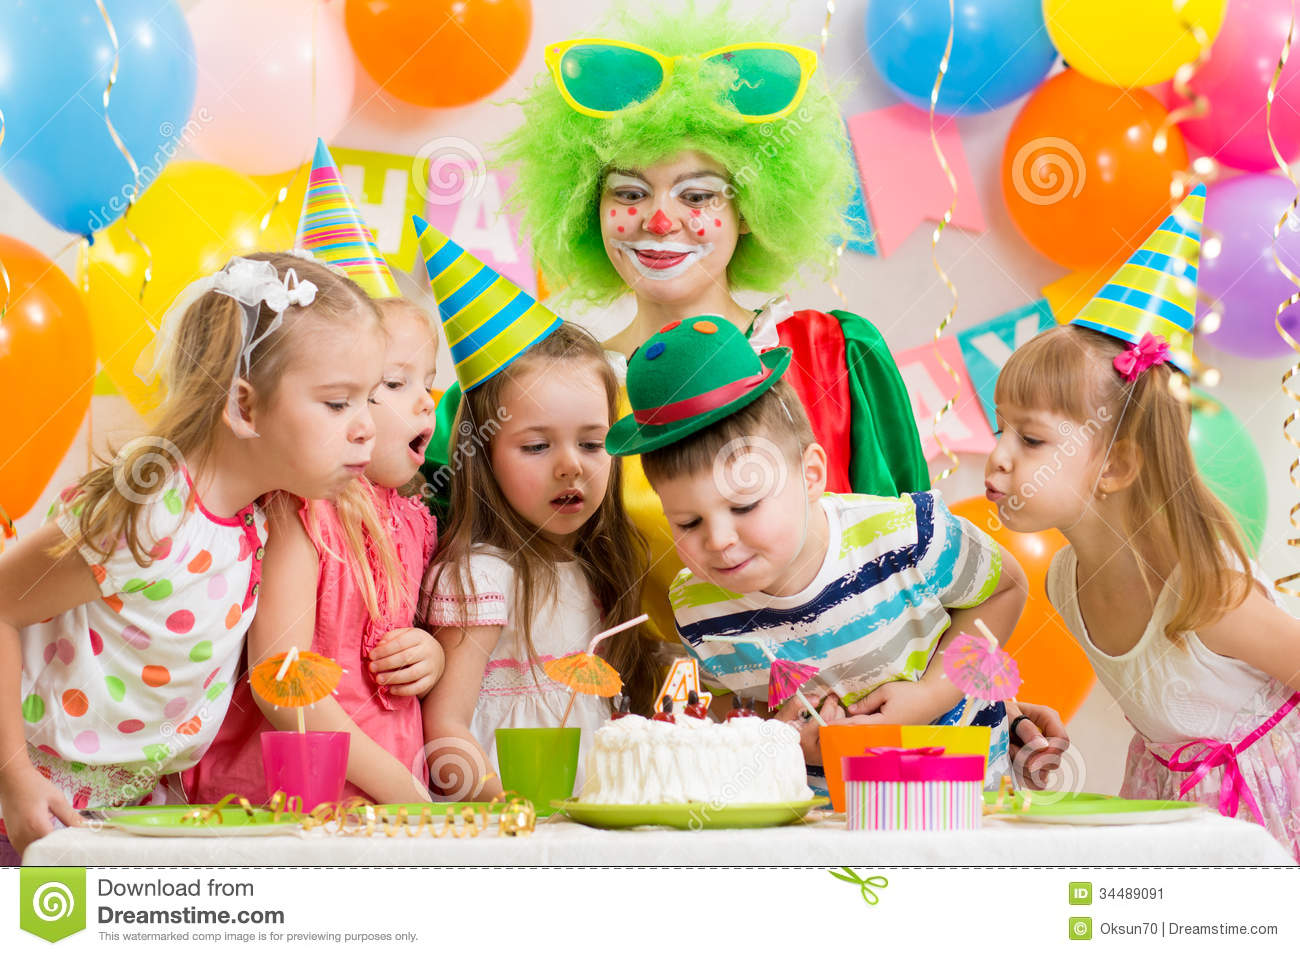 picture of birthday party celebration ; kids-clown-celebrating-birthday-party-blowing-candle-cake-34489091